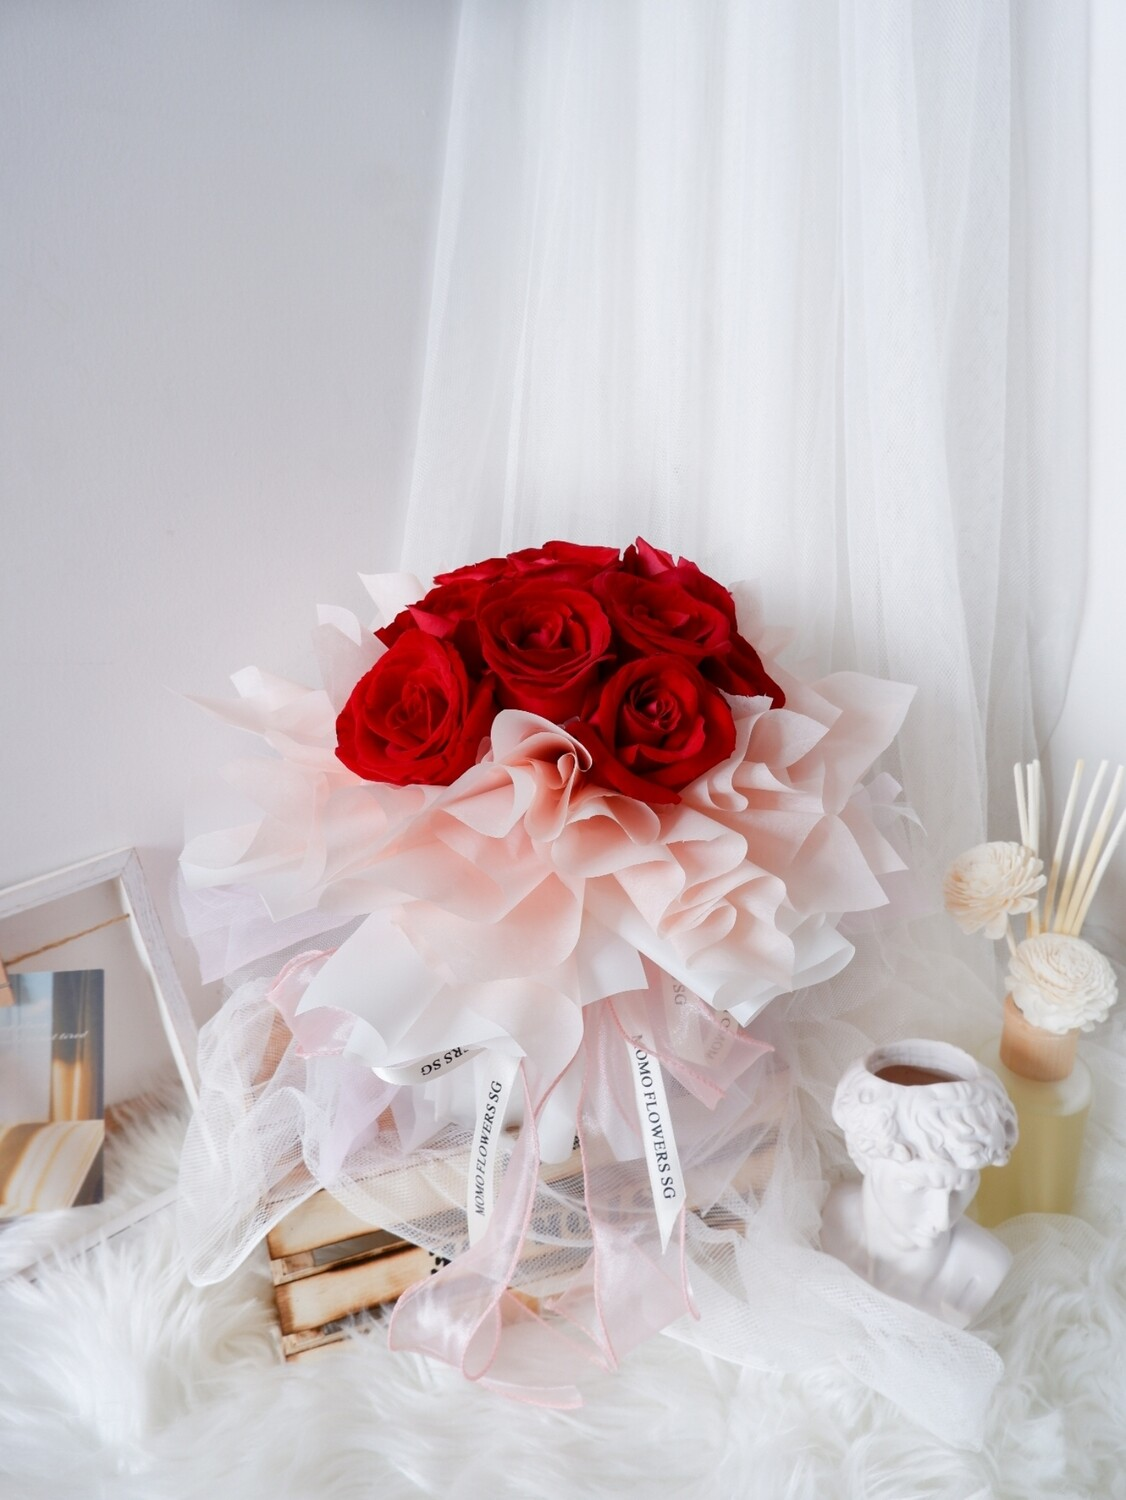 FLASH DEAL: 12 Stalk Fresh Red Rose Bouquet (Can only be delivered/collected on 21/22 Aug)